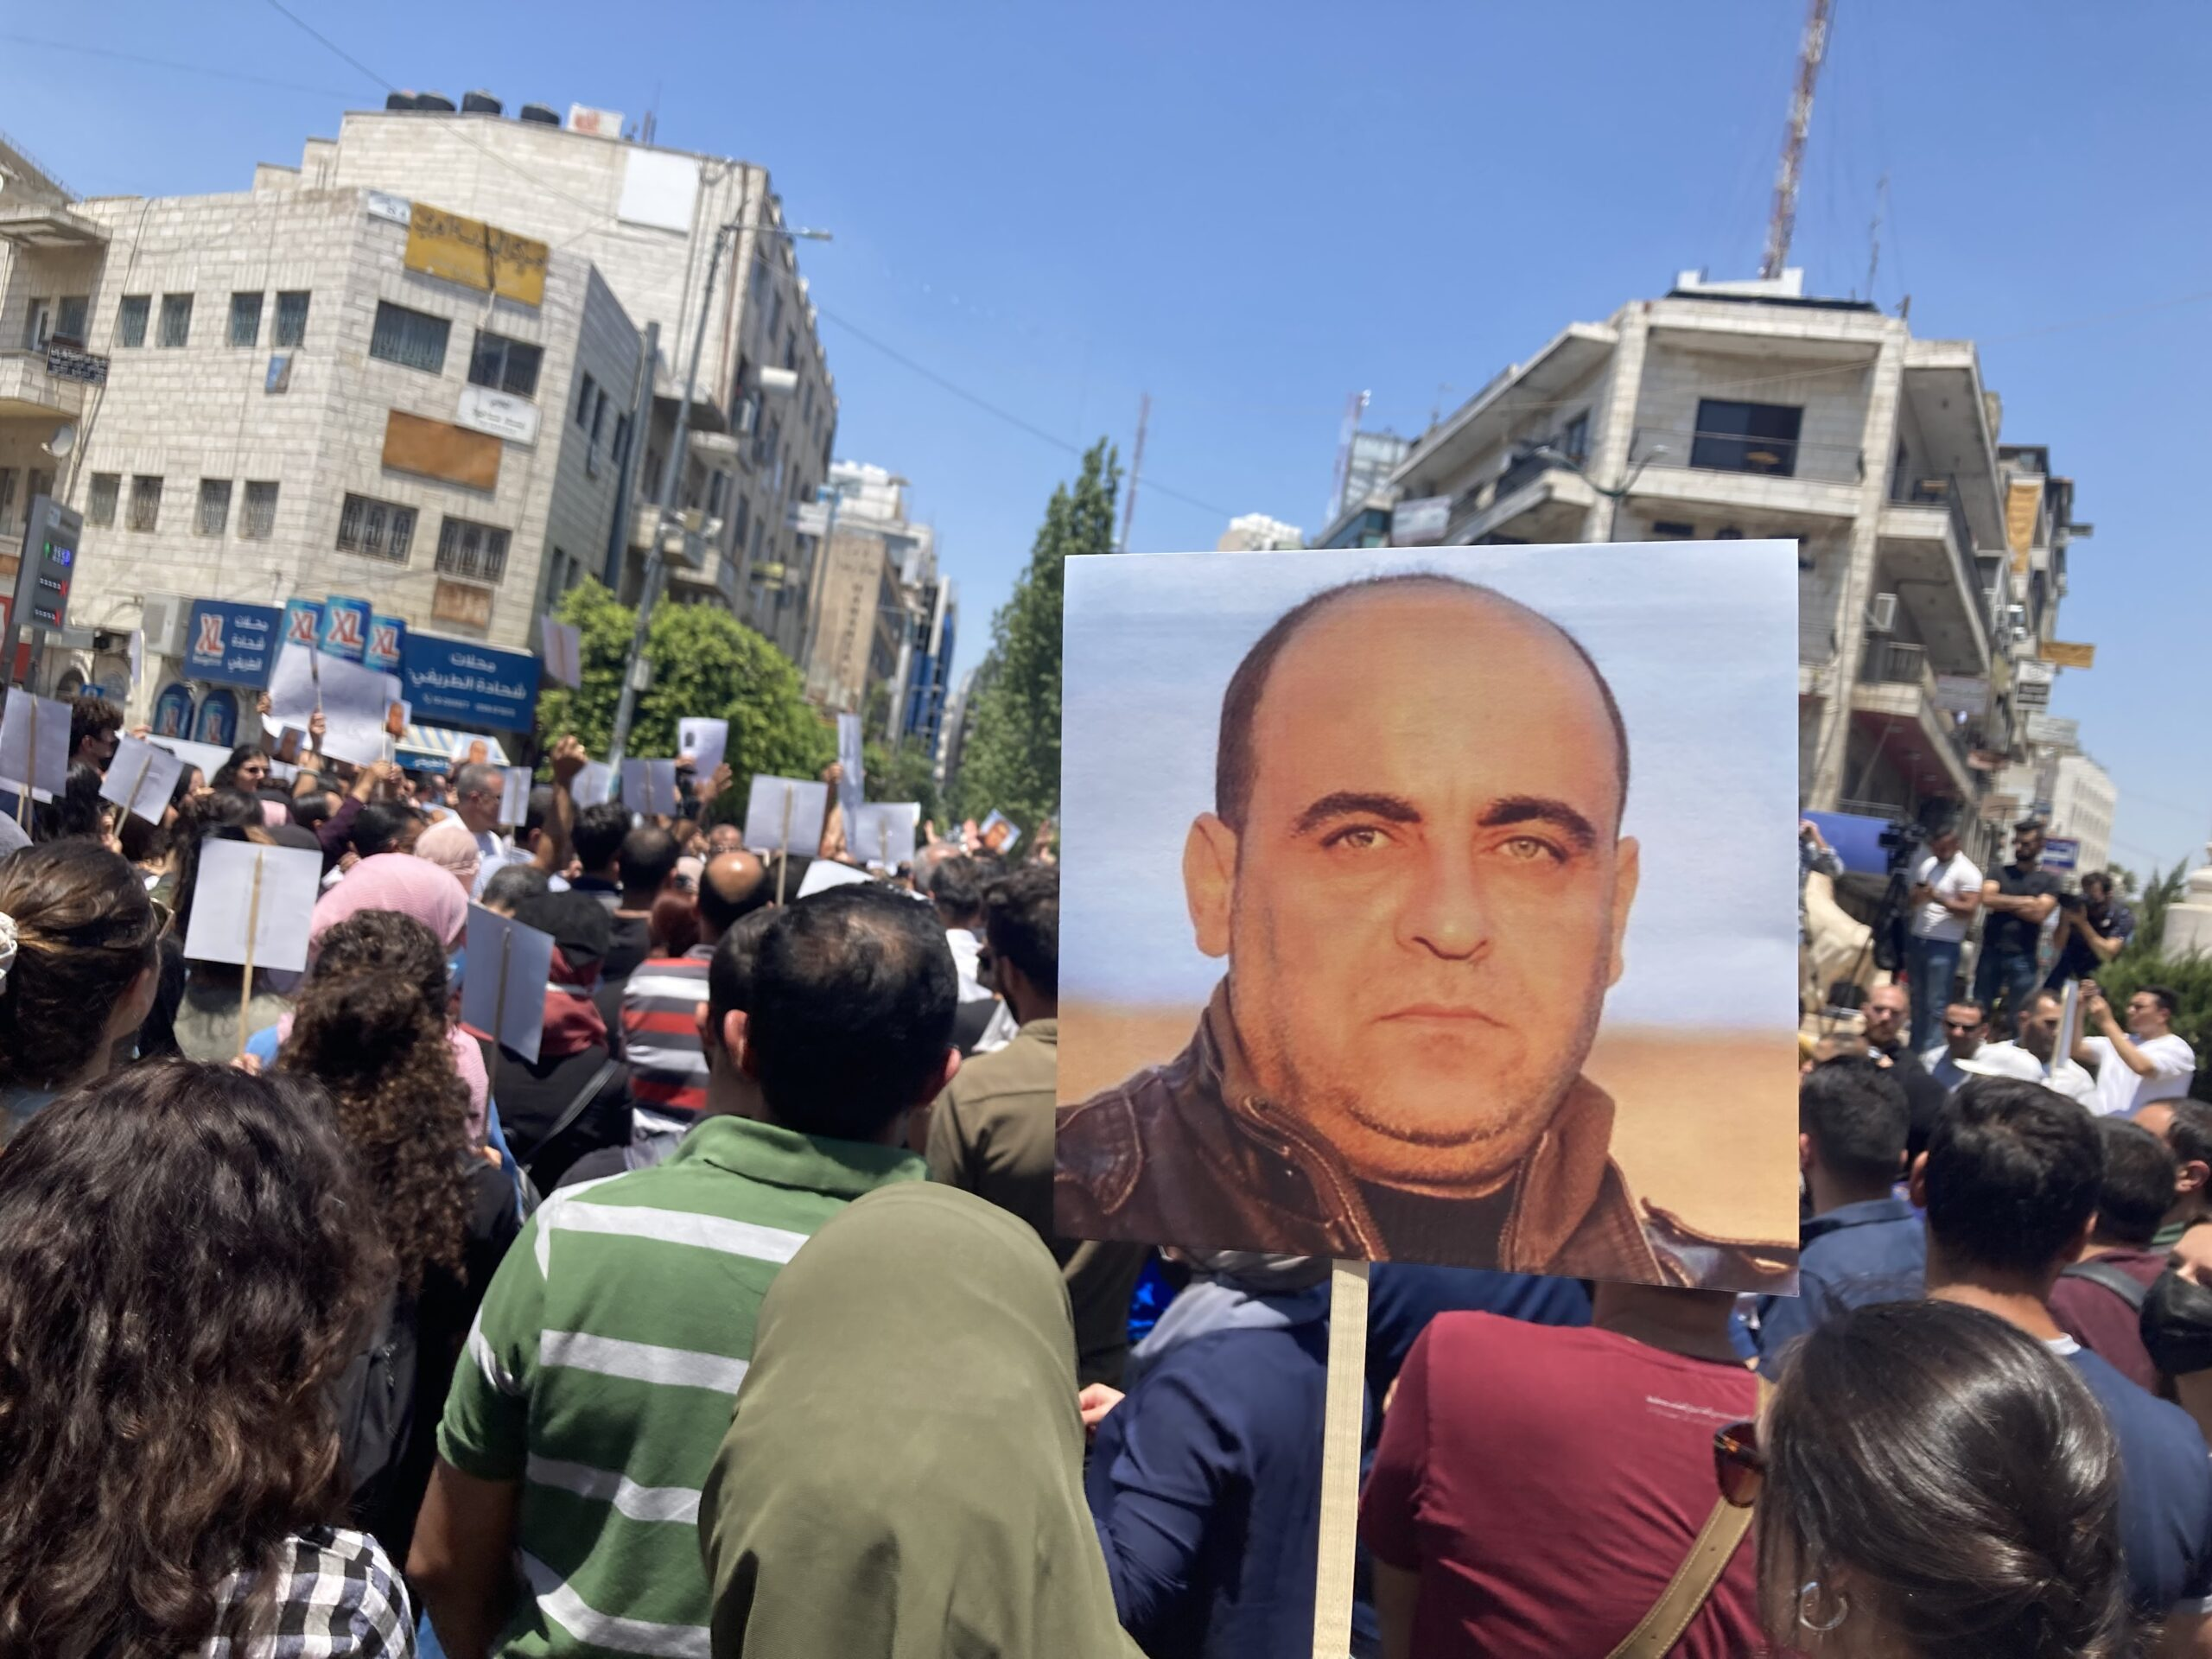 Palestine: Investigation into death in custody of Palestinian activist must be transparent, effective